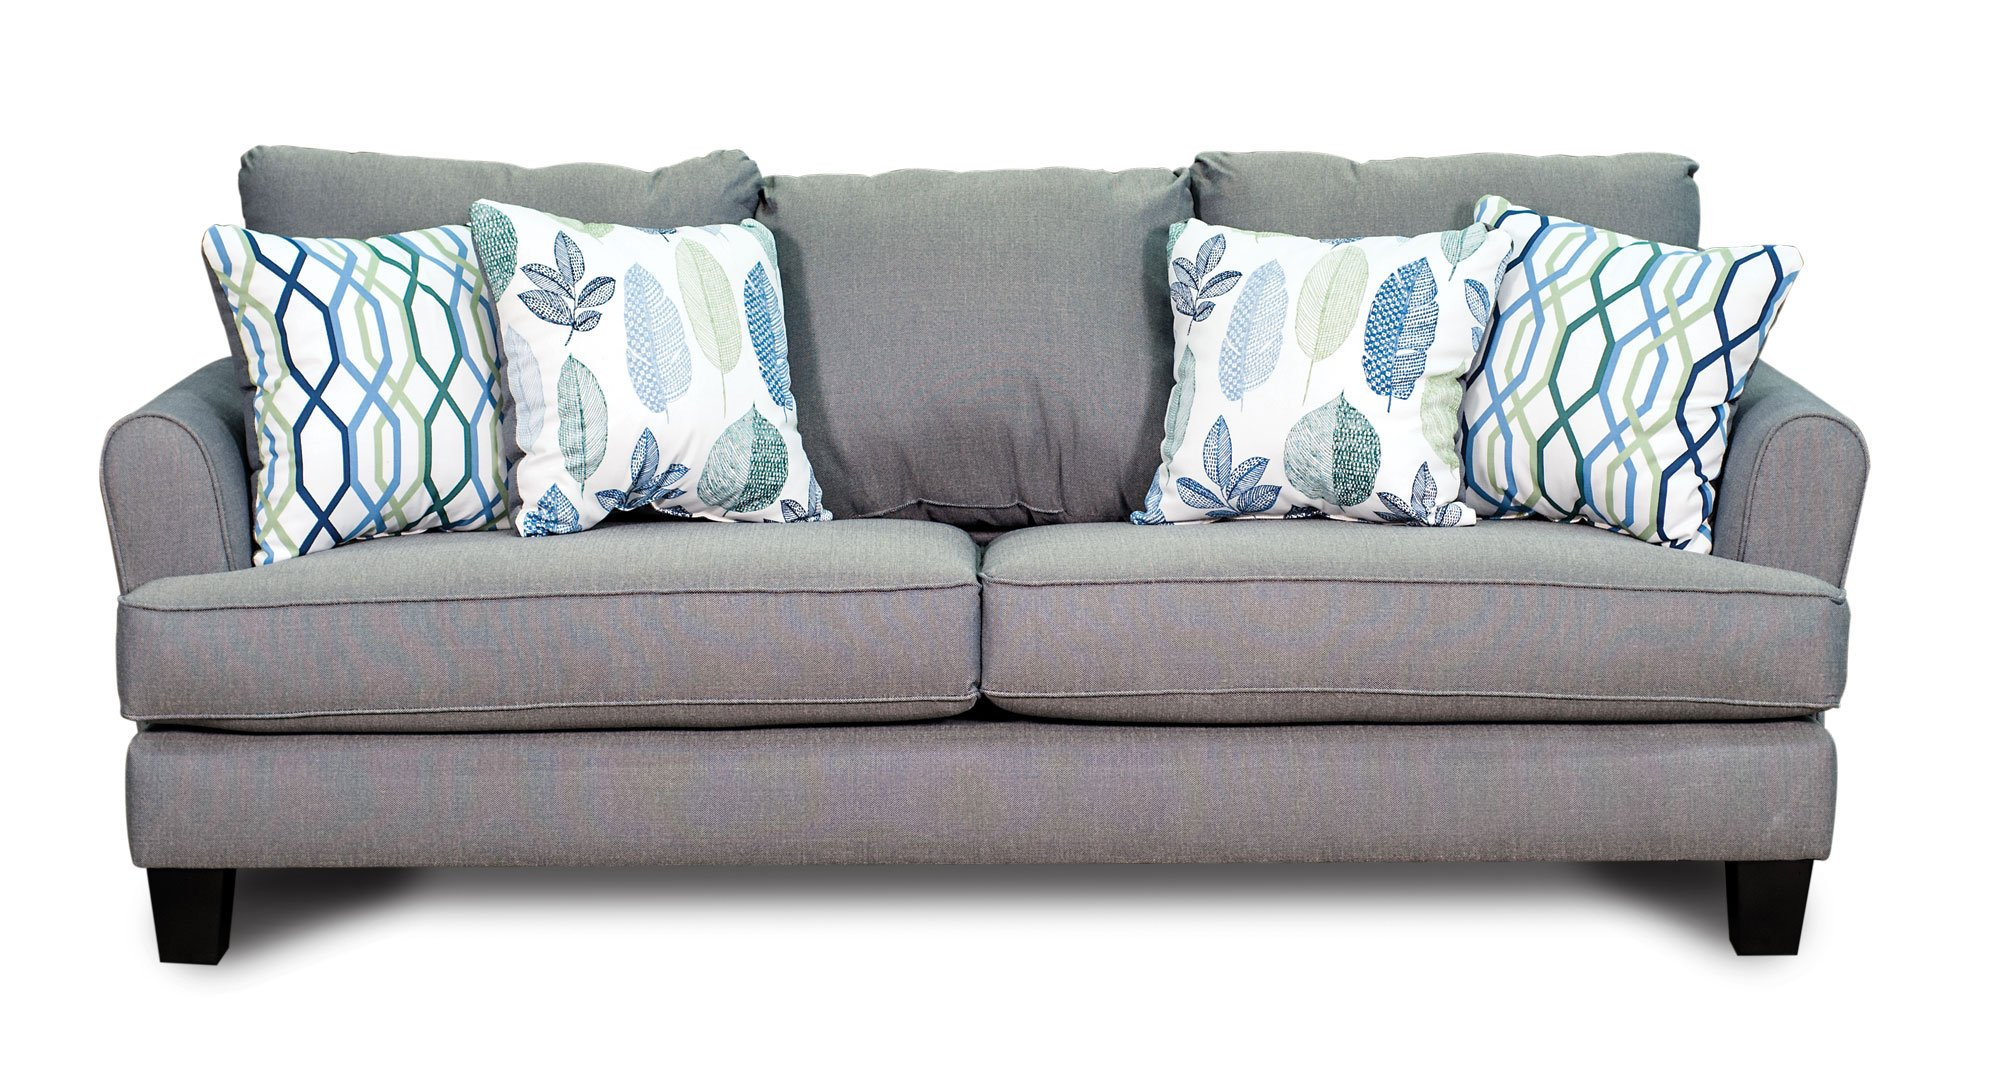 Gray blue upholstered casual contemporary sofa loveseat for Blue grey sofa